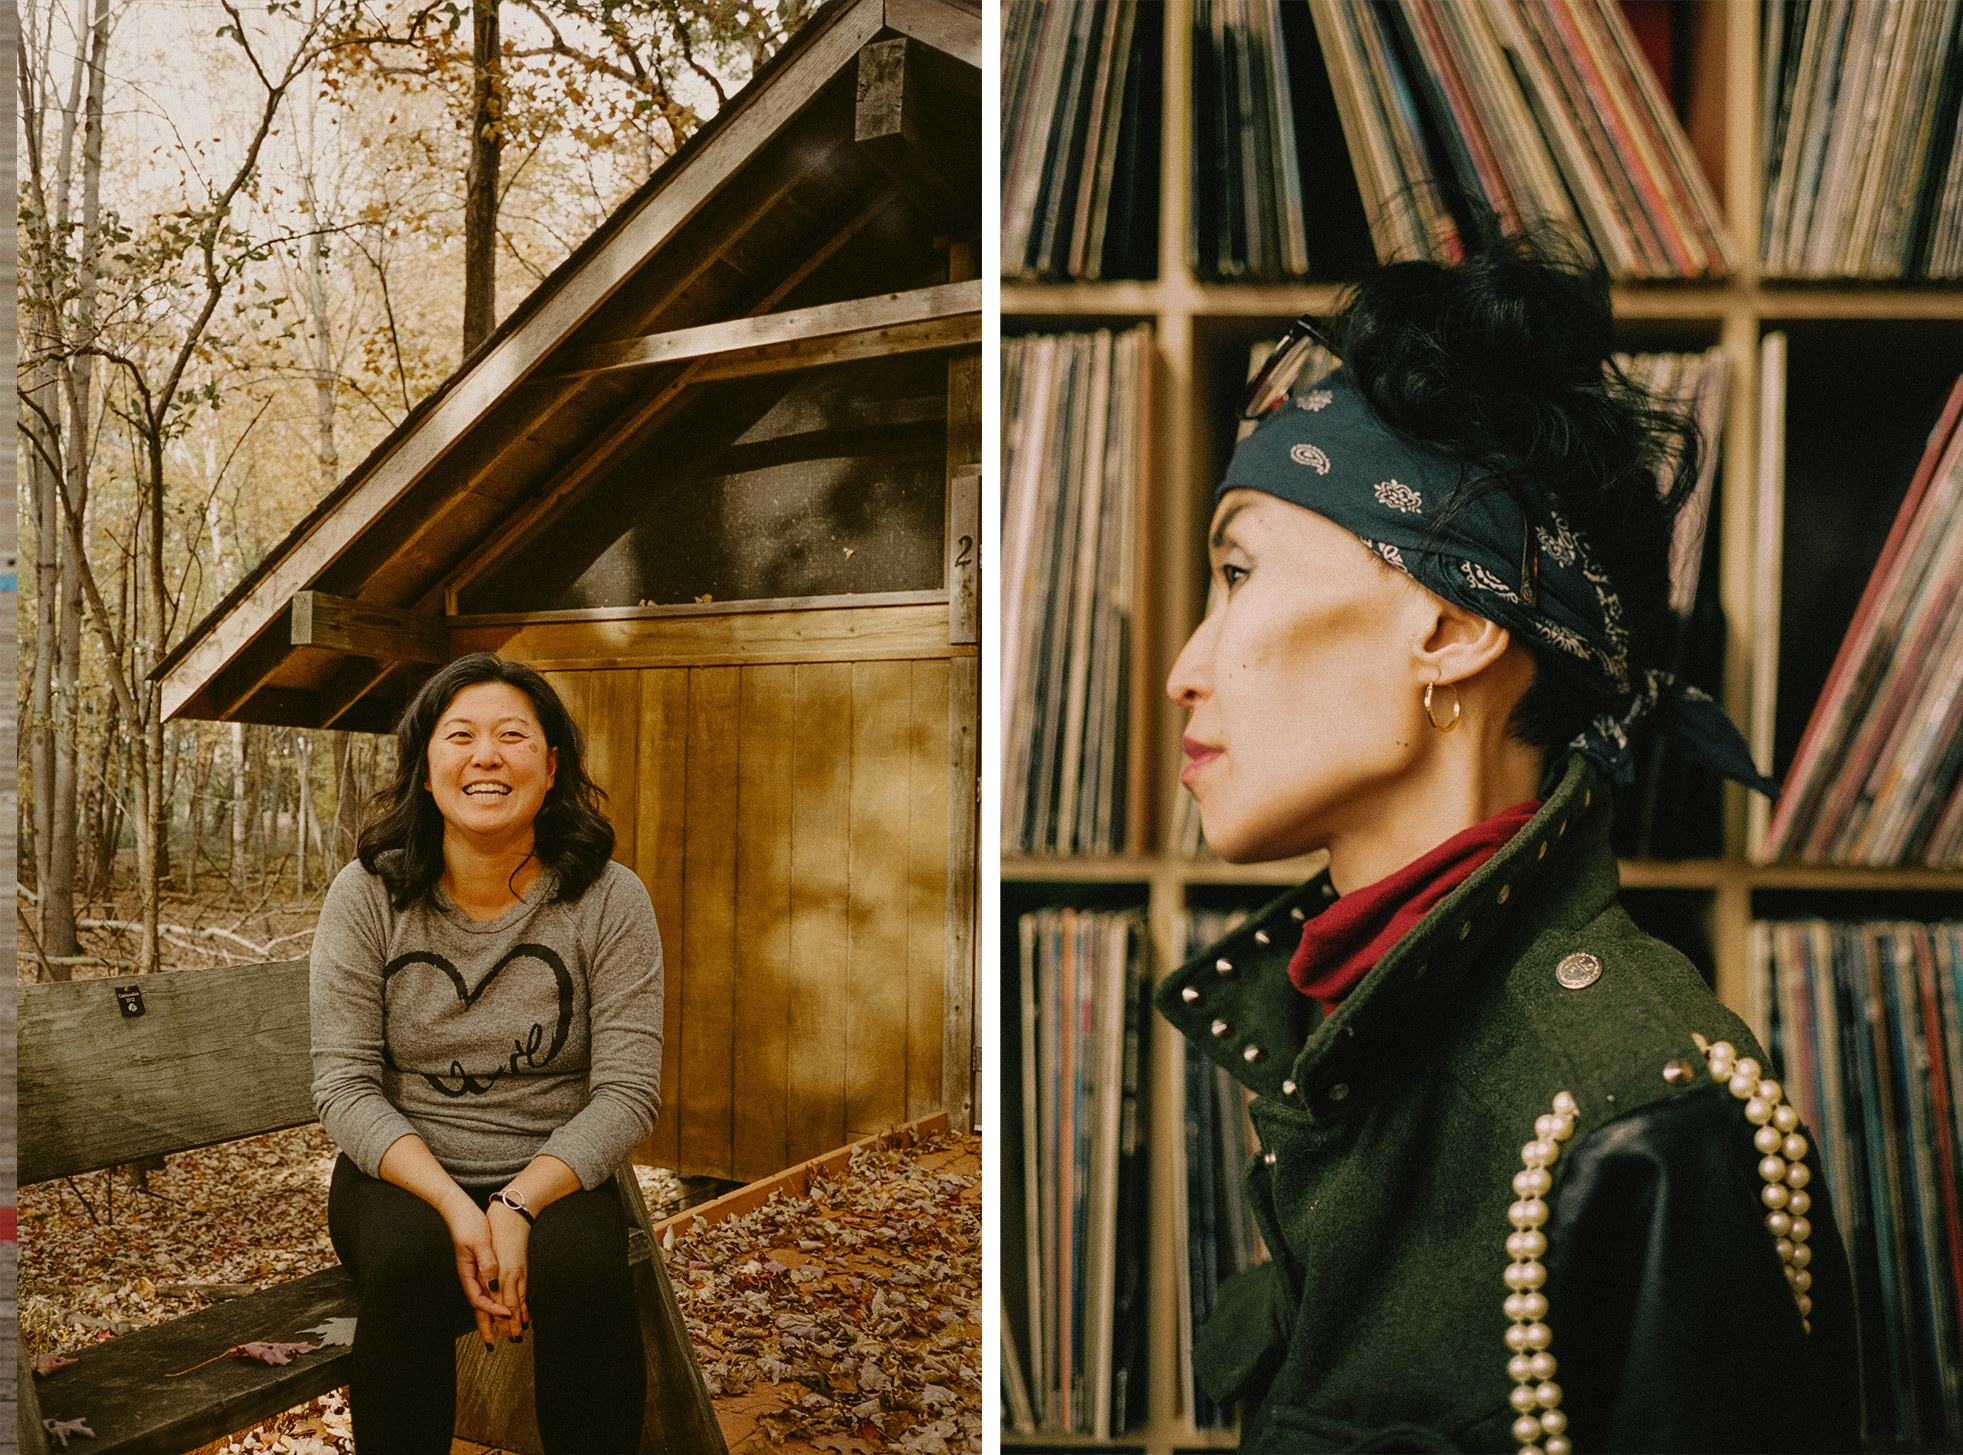 A woman laughs in the woods, and a woman wearing a bandana in front of a record collection